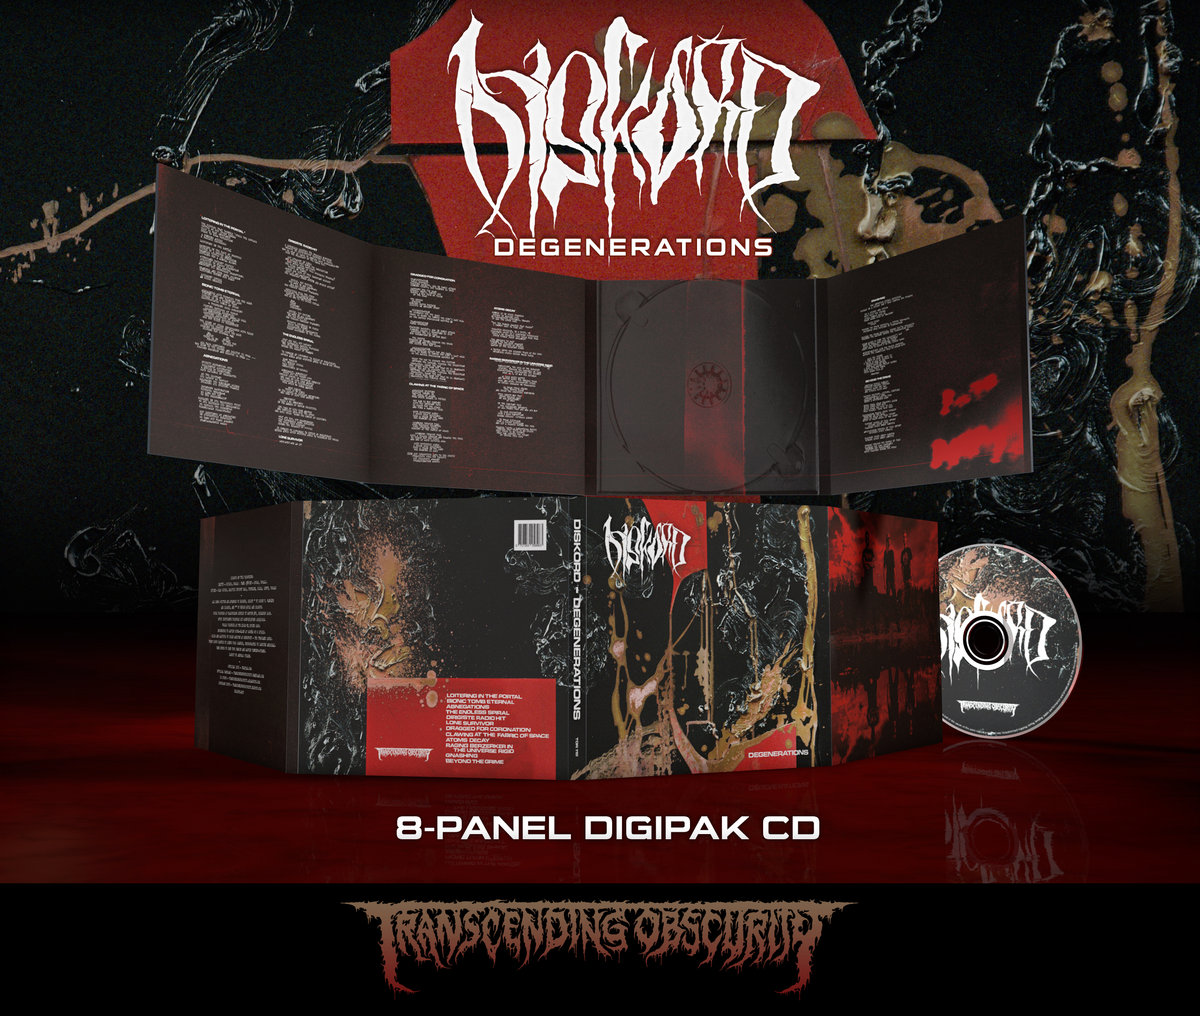 DISKORD - Degenerations 8-Panel Digipak CD